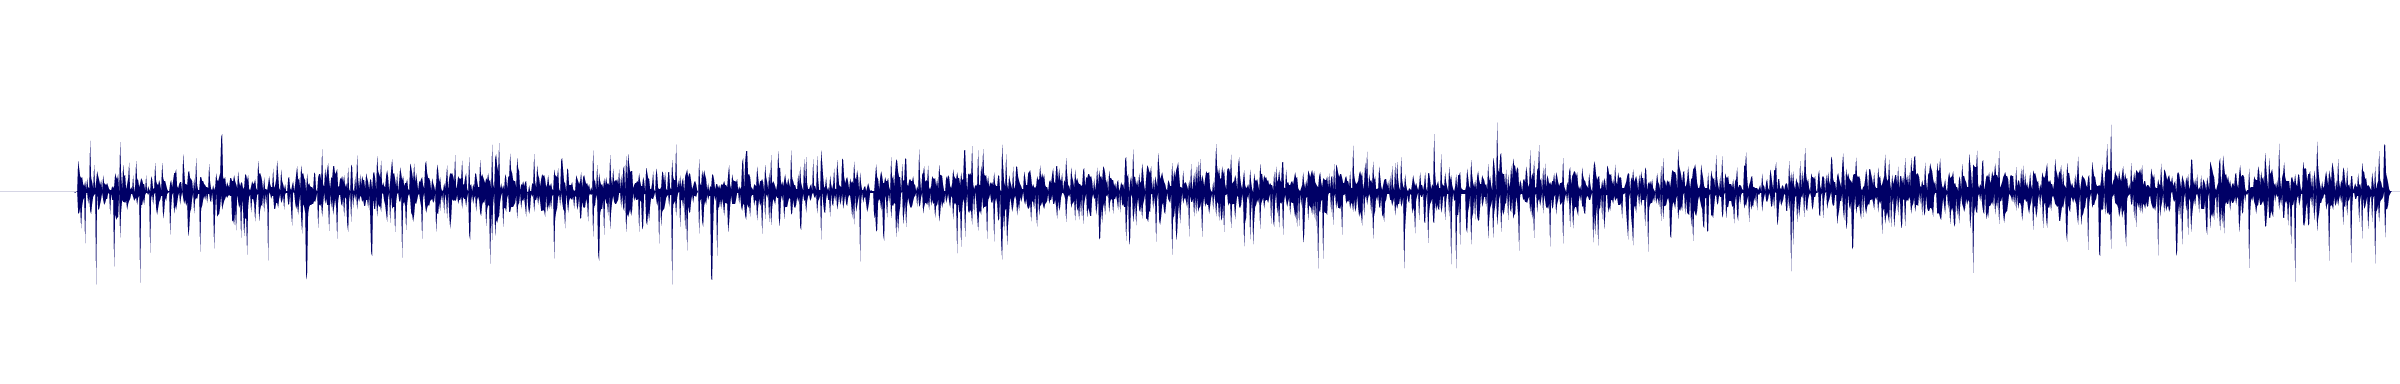 waveform of track #146464